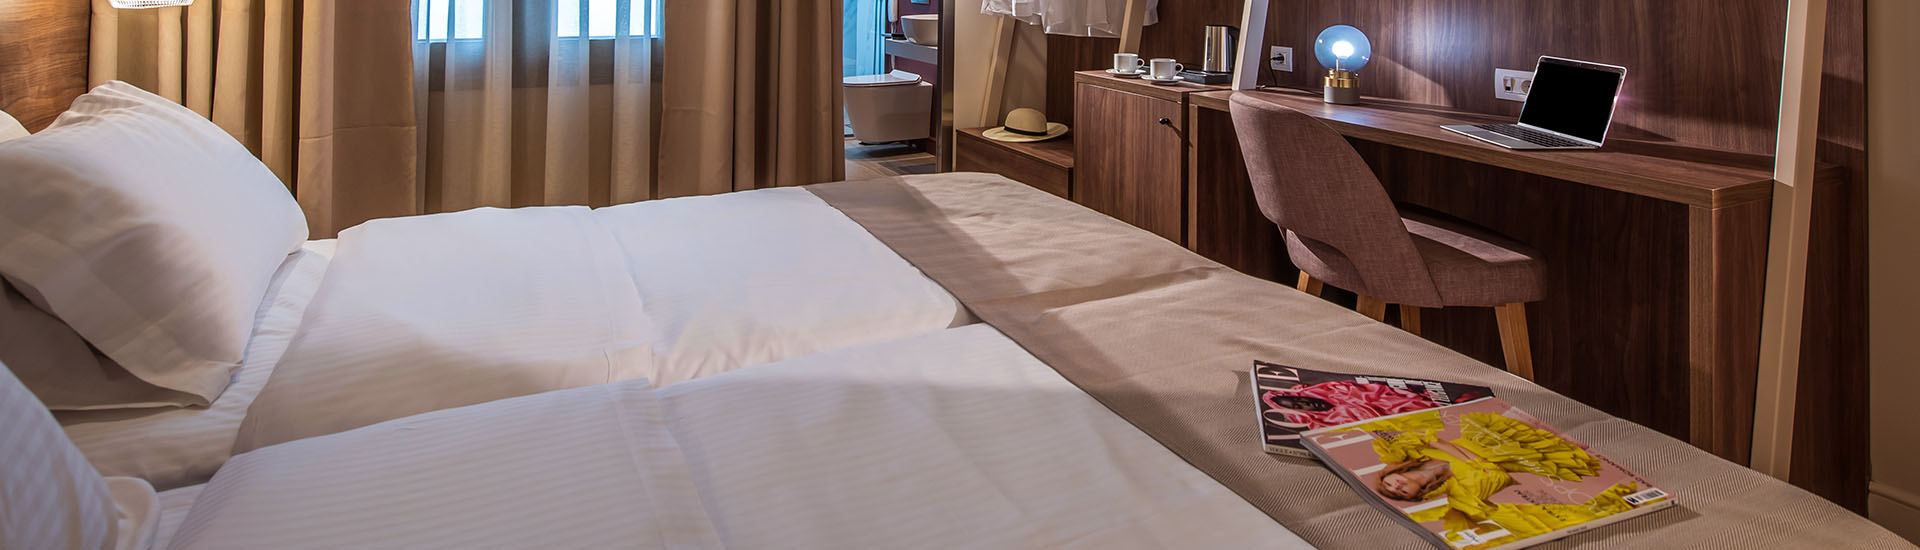 heraklion crete rooms - Metropole Urban Hotel